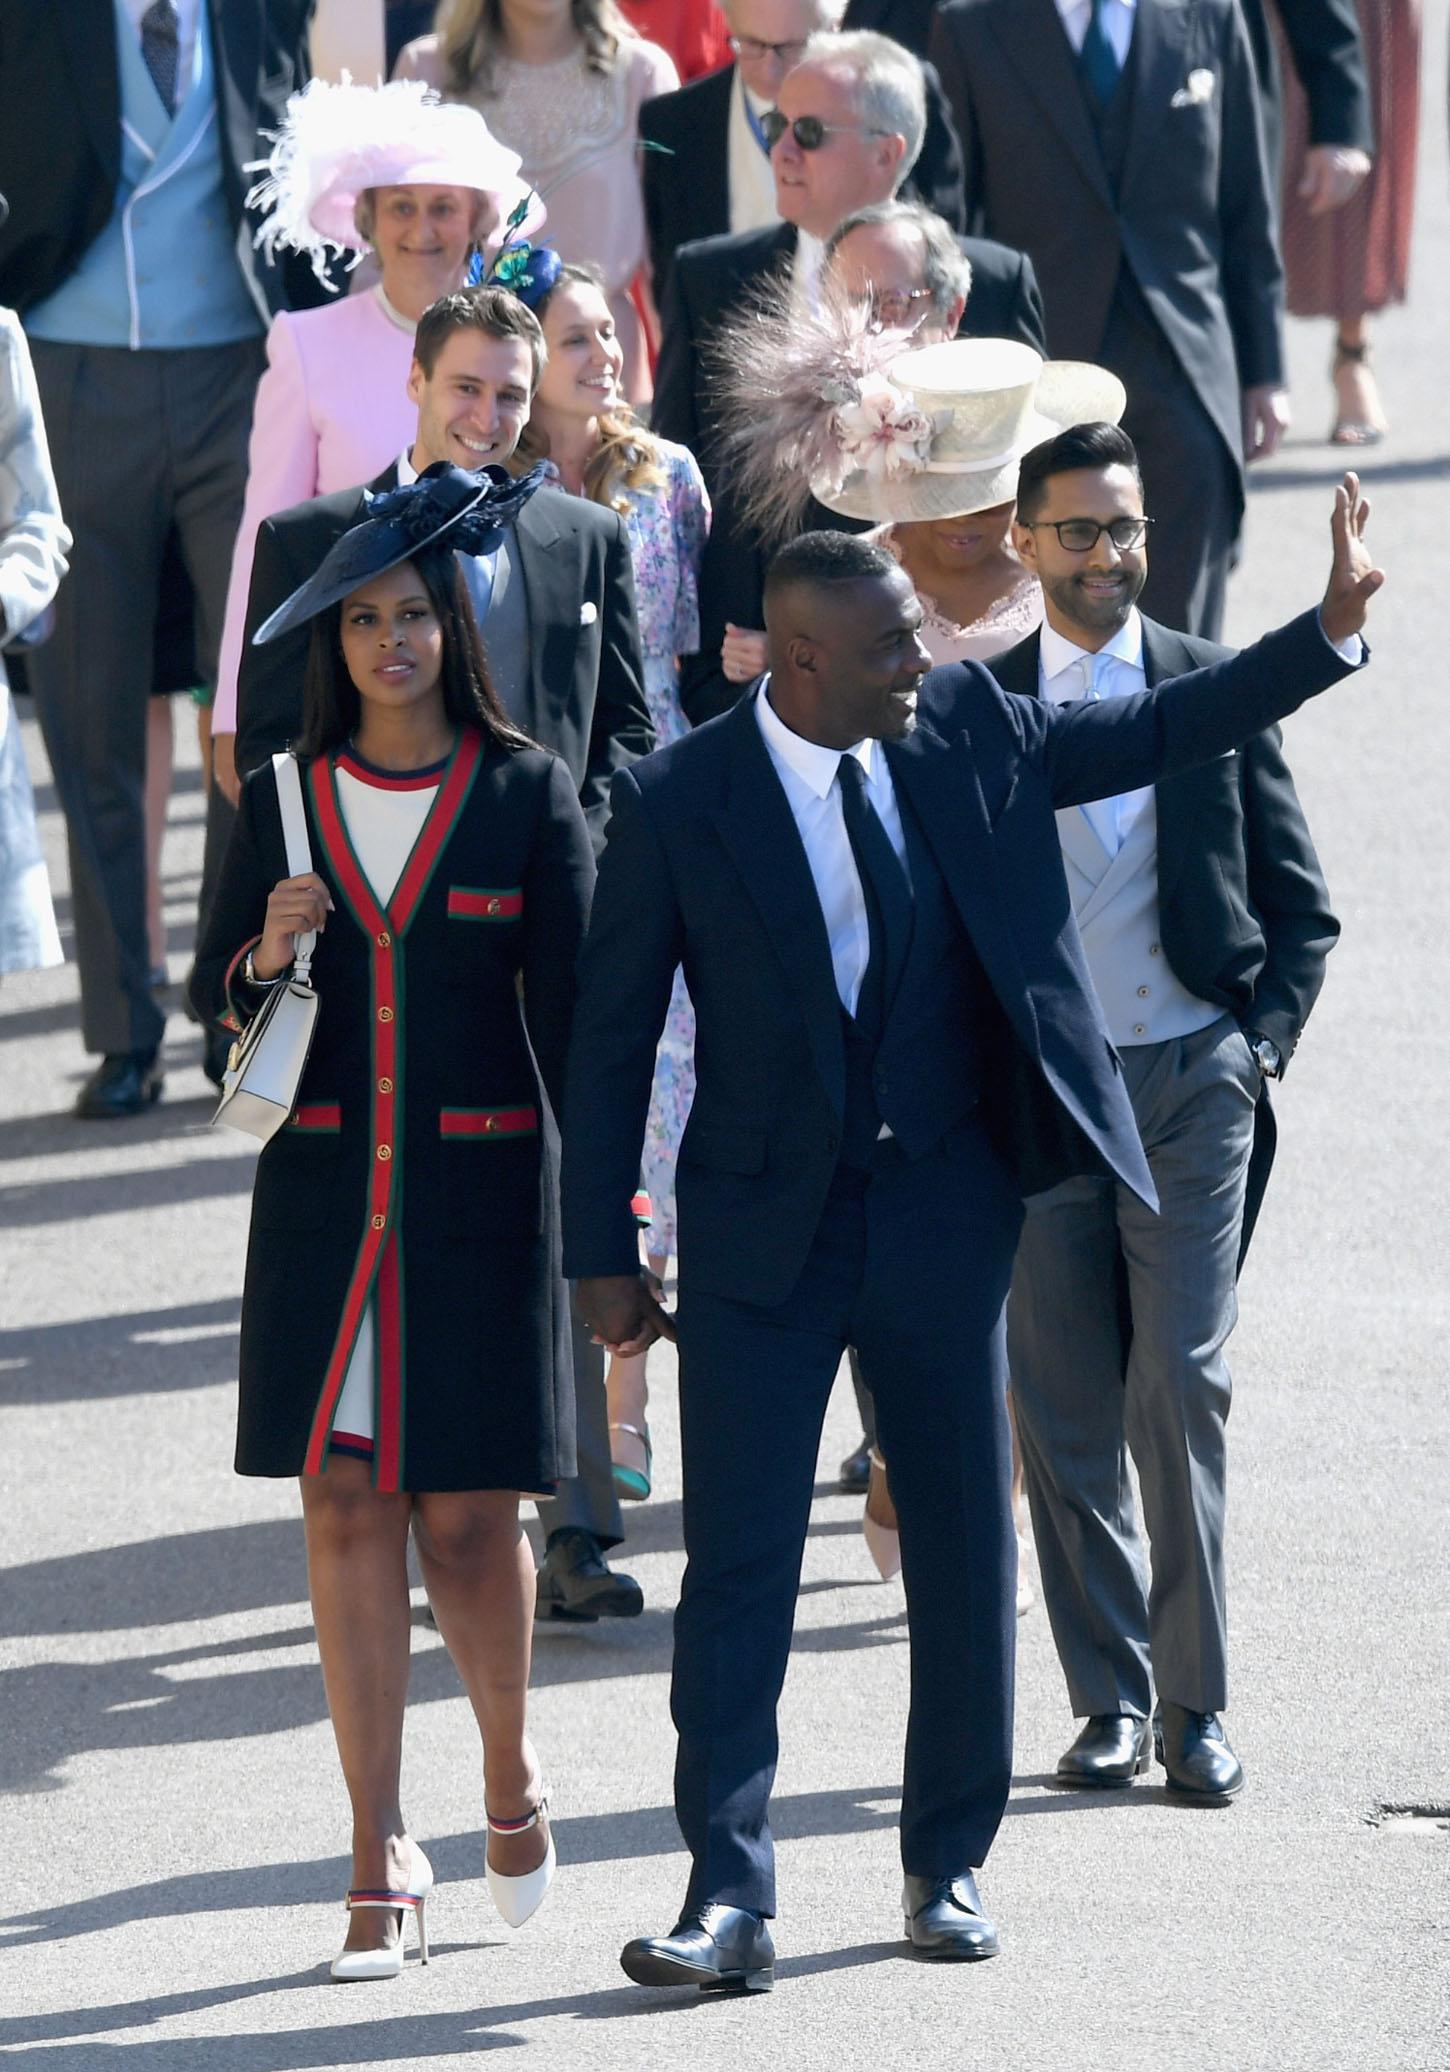 WINDSOR, ENGLAND - MAY 19:  Sabrina Dhowre (L) and Idris Elba attend the wedding of Prince Harry to Ms Meghan Markle at St George's Chapel, Windsor Castle on May 19, 2018 in Windsor, England. Prince Henry Charles Albert David of Wales marries Ms. Meghan Markle in a service at St George's Chapel inside the grounds of Windsor Castle. Among the guests were 2200 members of the public, the royal family and Ms. Markle's Mother Doria Ragland.  (Photo by Shaun Botterill/Getty Images)